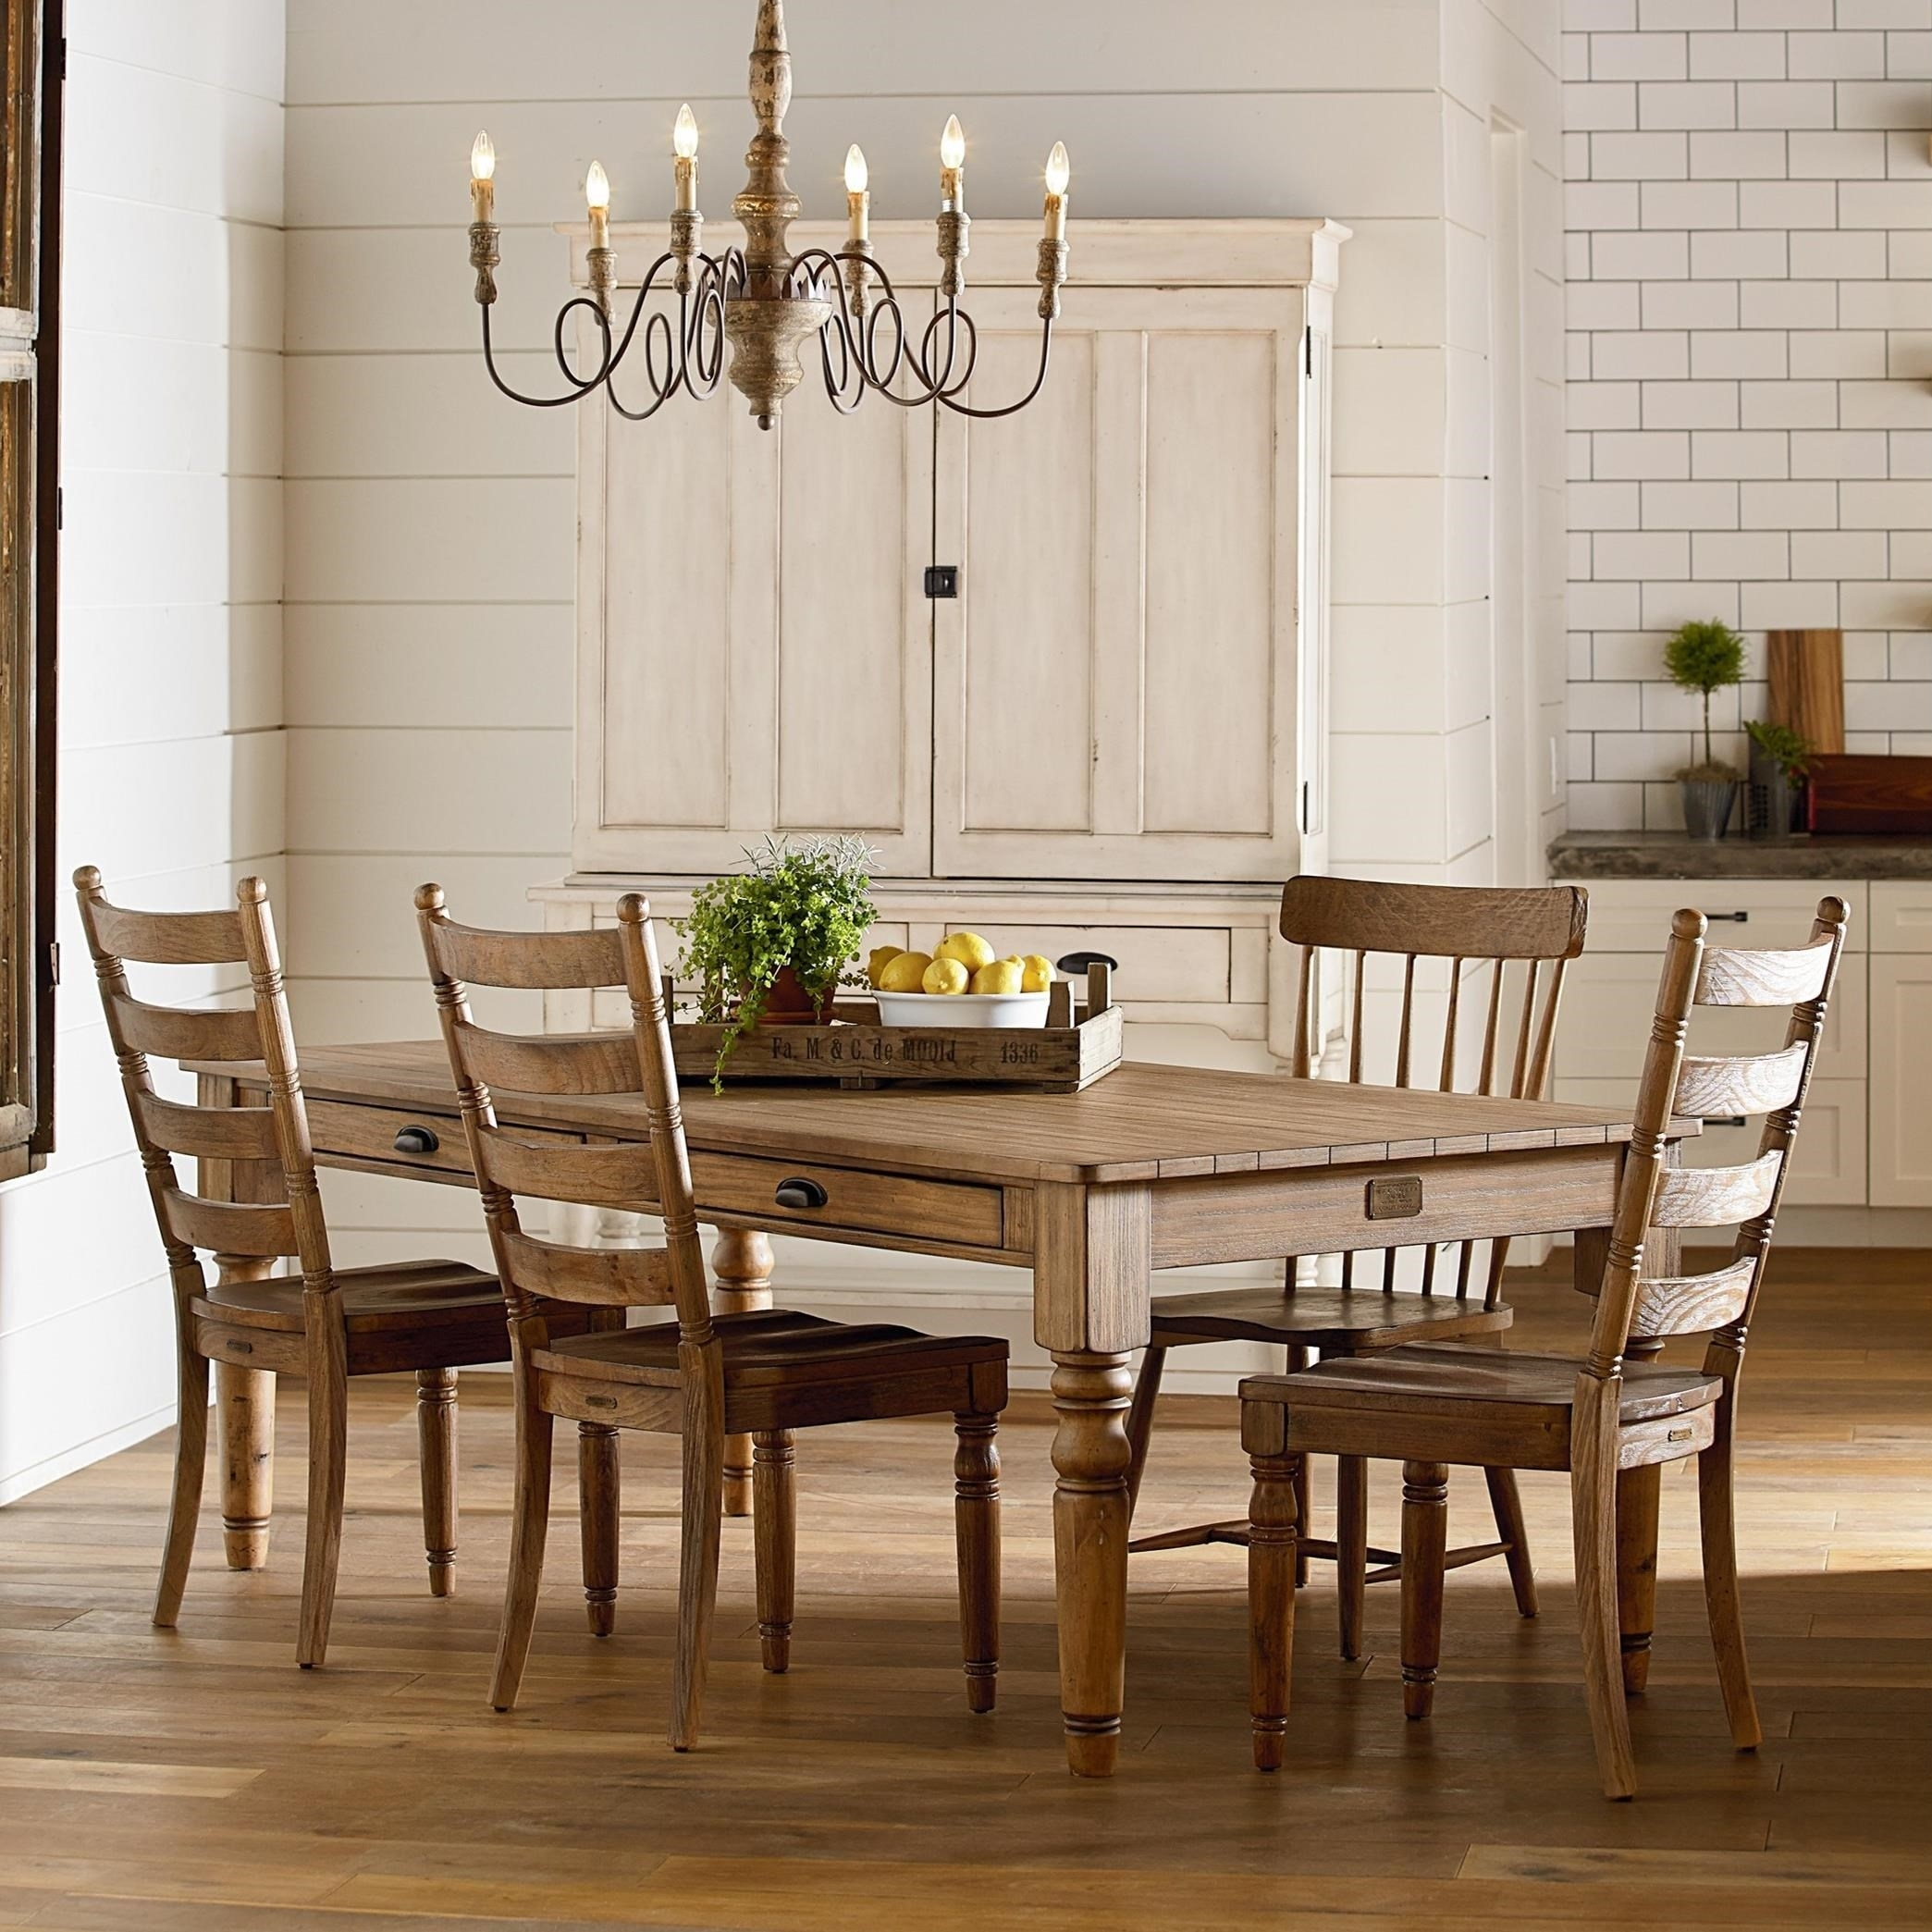 Magnolia Homejoanna Gaines Primitive Primitive Dining Room Group Pertaining To 2019 Magnolia Home Peacock Blackened Bronze Metal Side Chairs (#11 of 20)